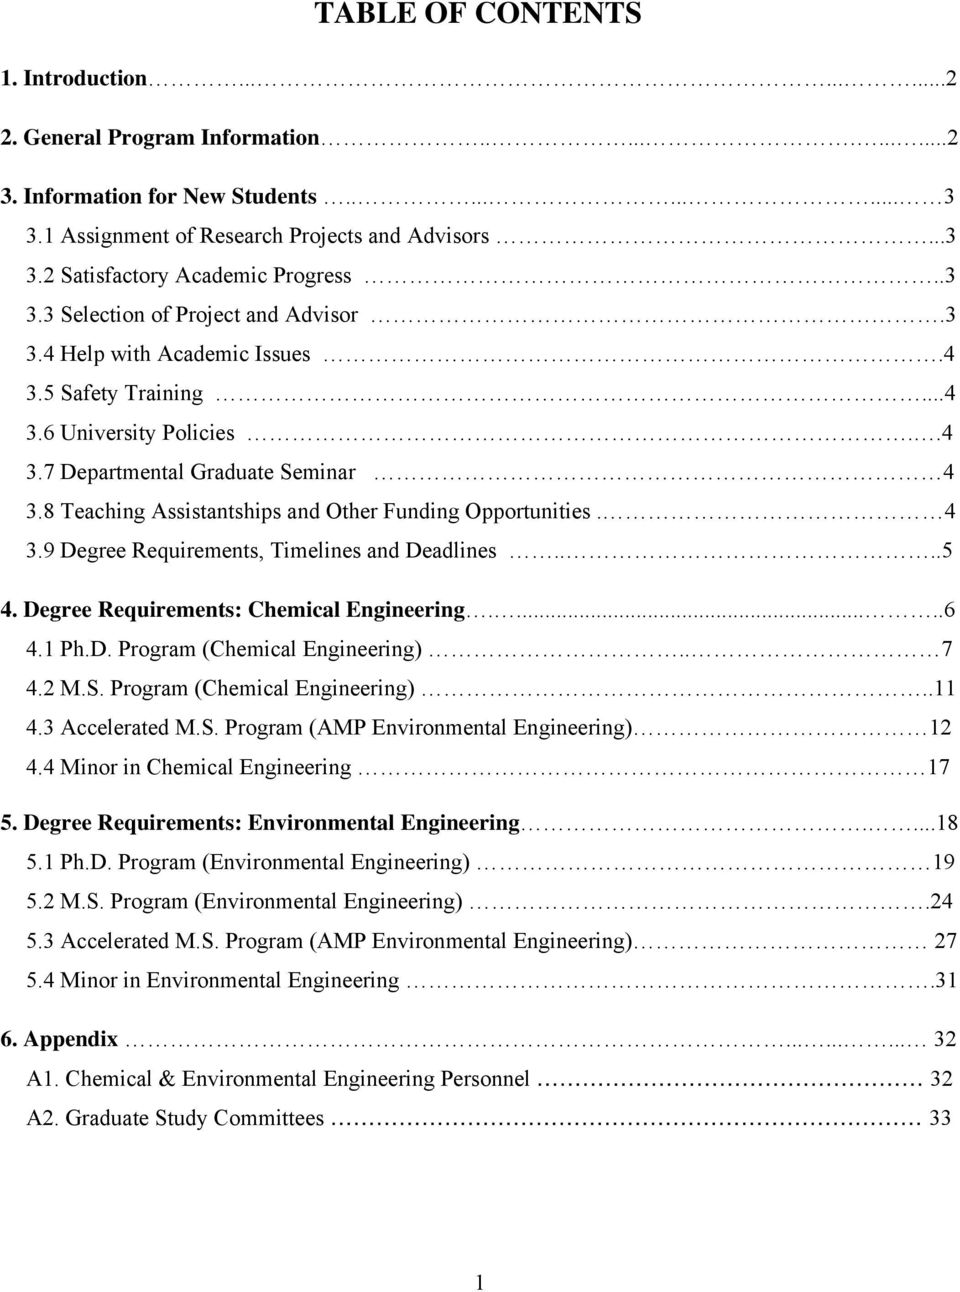 8 Teaching Assistantships and Other Funding Opportunities. 4 3.9 Degree Requirements, Timelines and Deadlines....5 4. Degree Requirements: Chemical Engineering......6 4.1 Ph.D. Program (Chemical Engineering).